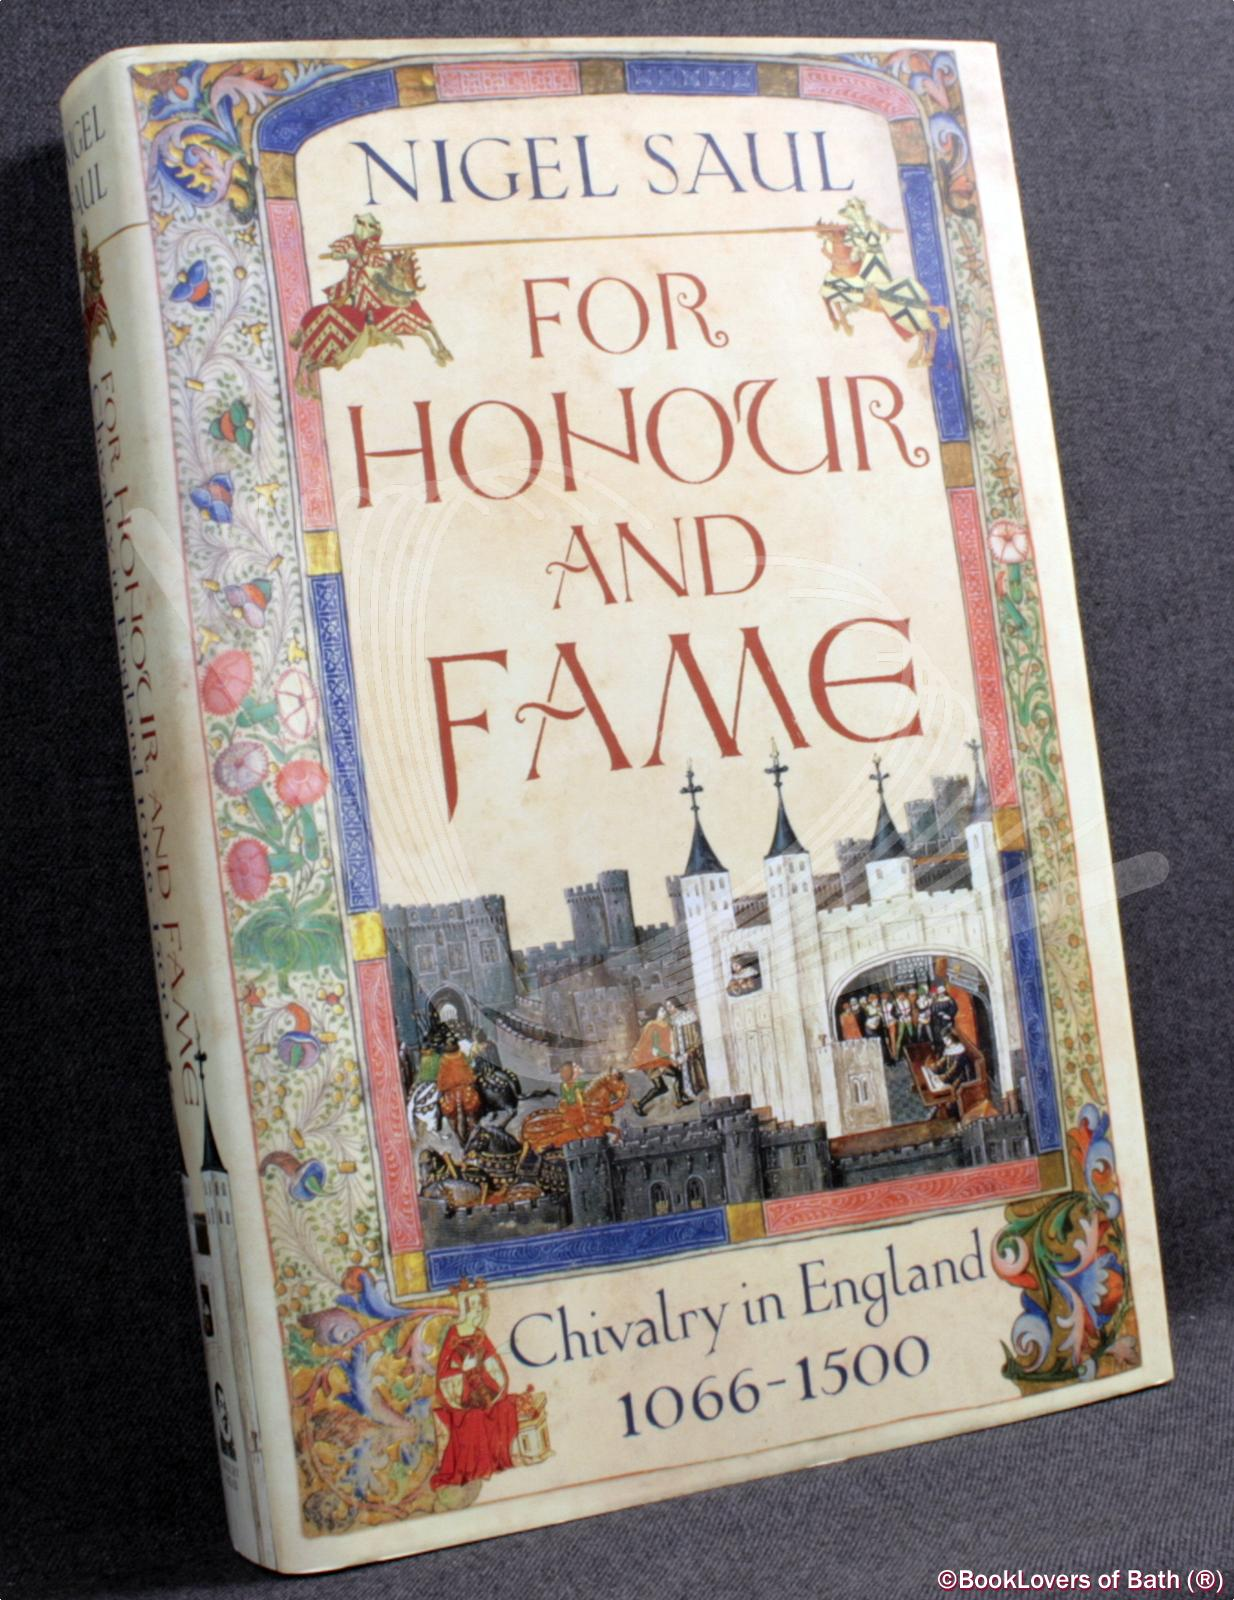 For Honour and Fame: Chivalry in England, 1066-1500 - Nigel Saul